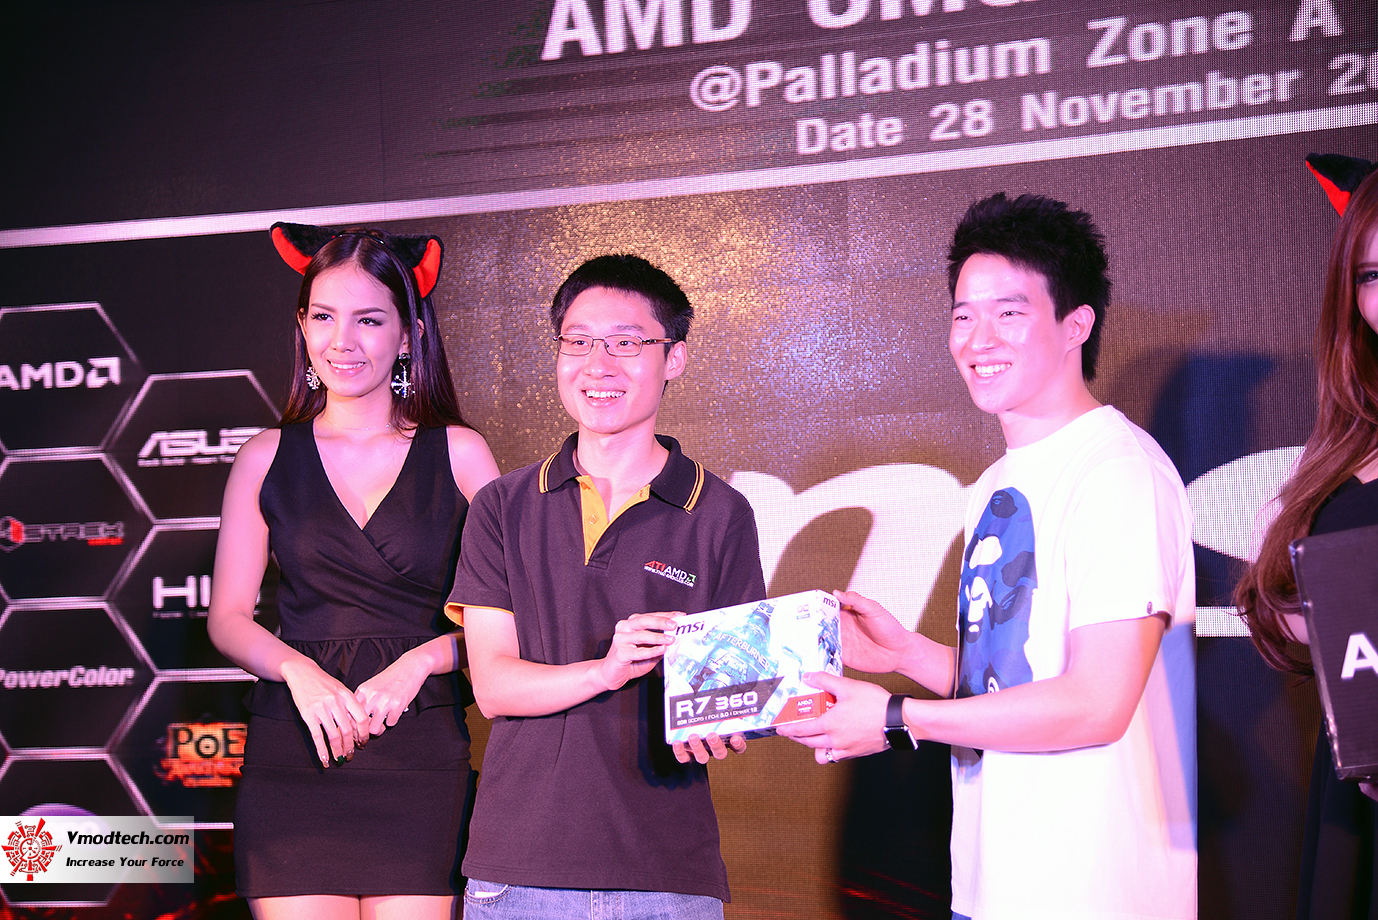 dsc 7172 AMD OMG! Party 2015 (AMD Overclock Modding Gaming Party 2015)